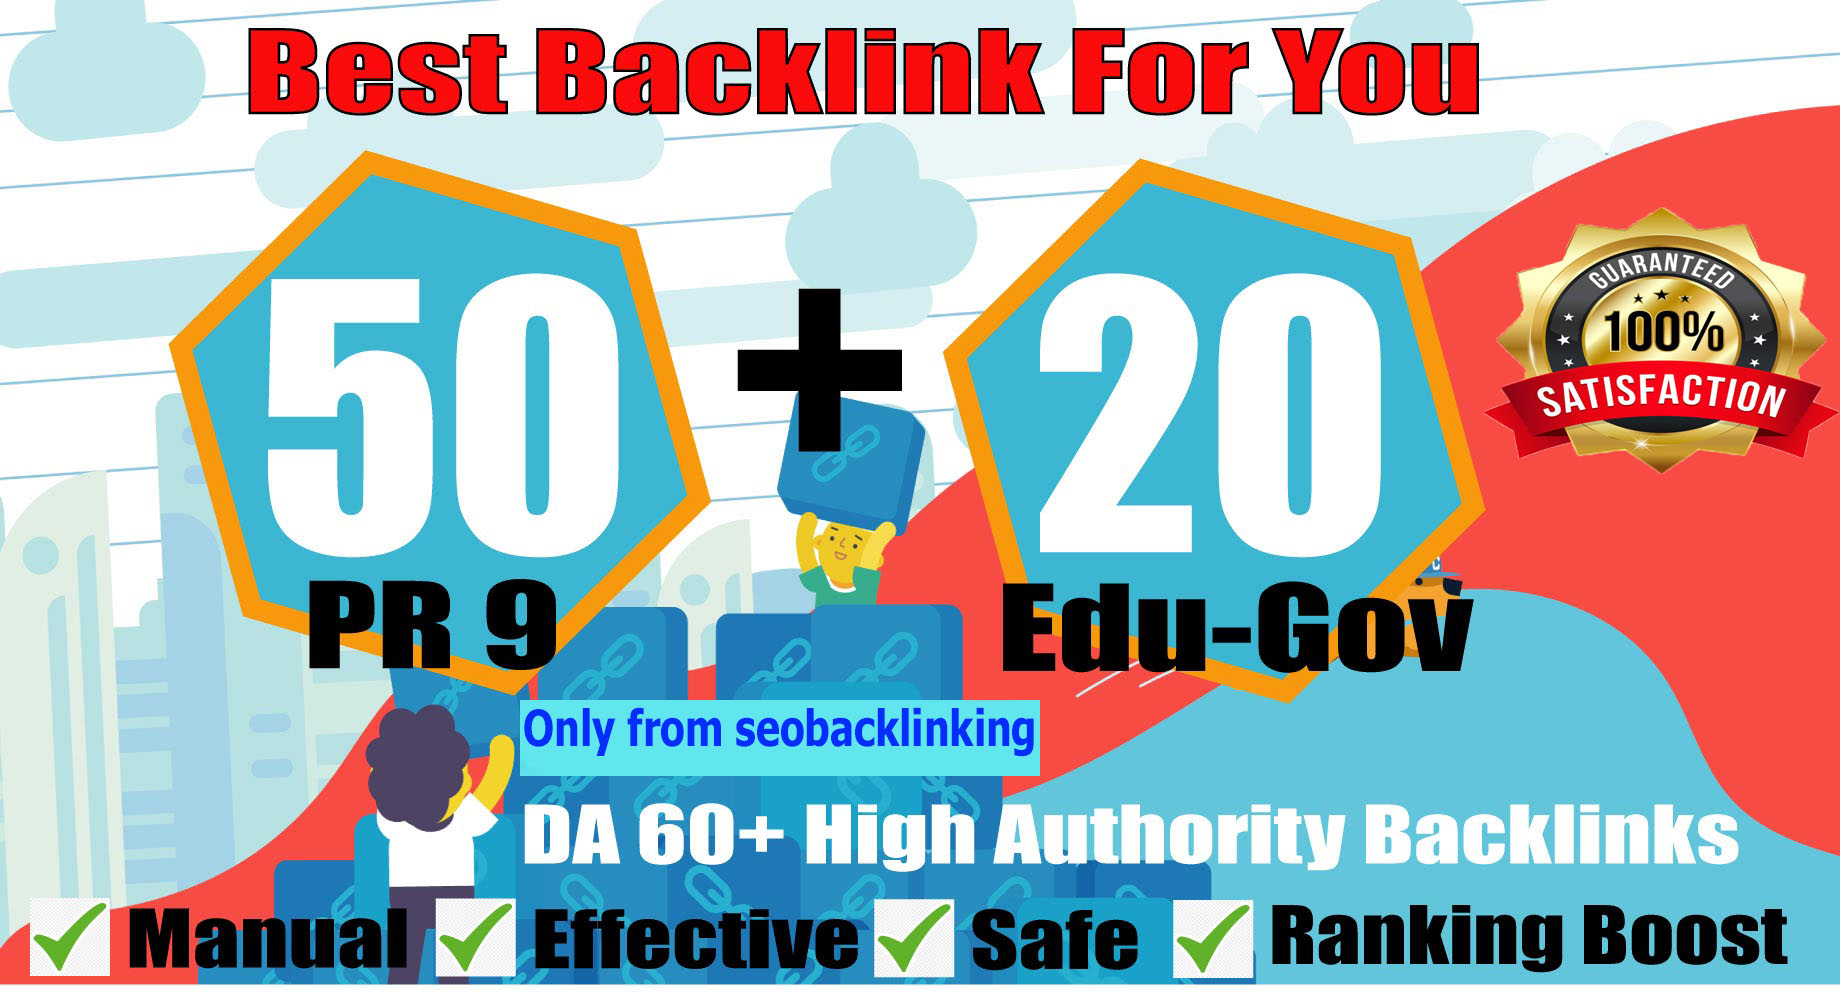 Super Quality Do 50 PR9+20 EDU-GOV Powerful Seo Backlink Permanent Links Increase Google Ranking